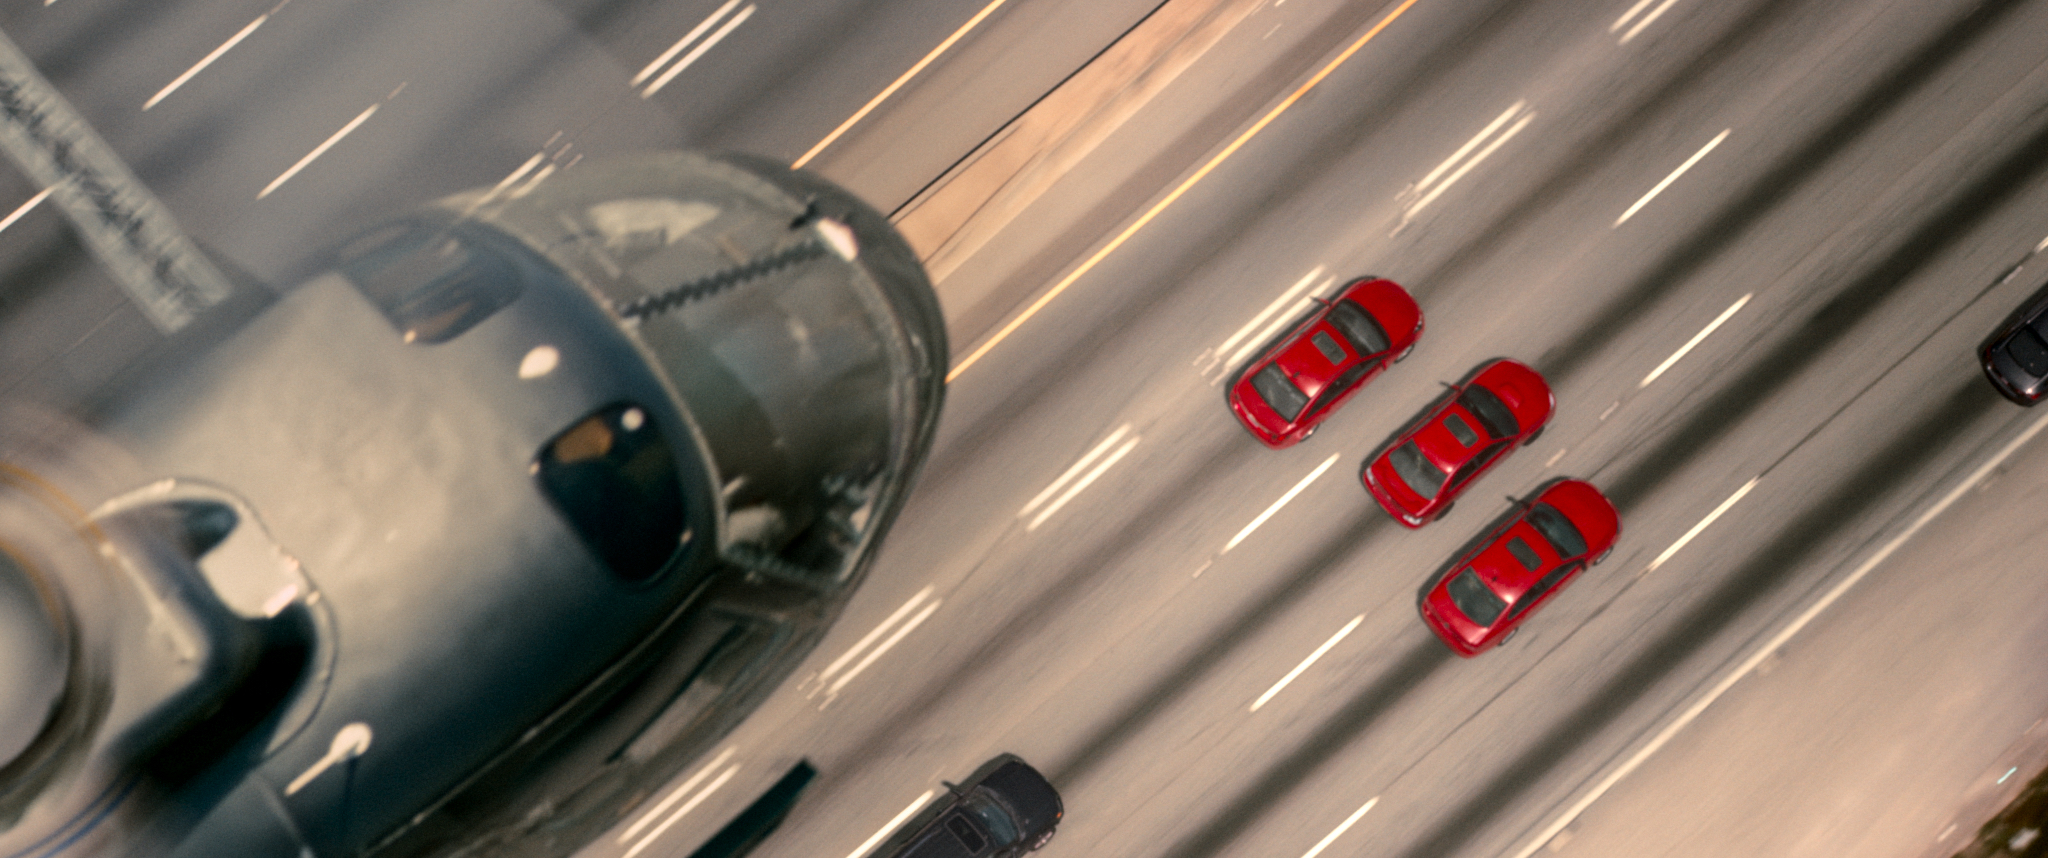 How 'Baby Driver' Did Its Craziest Car Chase Scene in Atlanta | Inverse